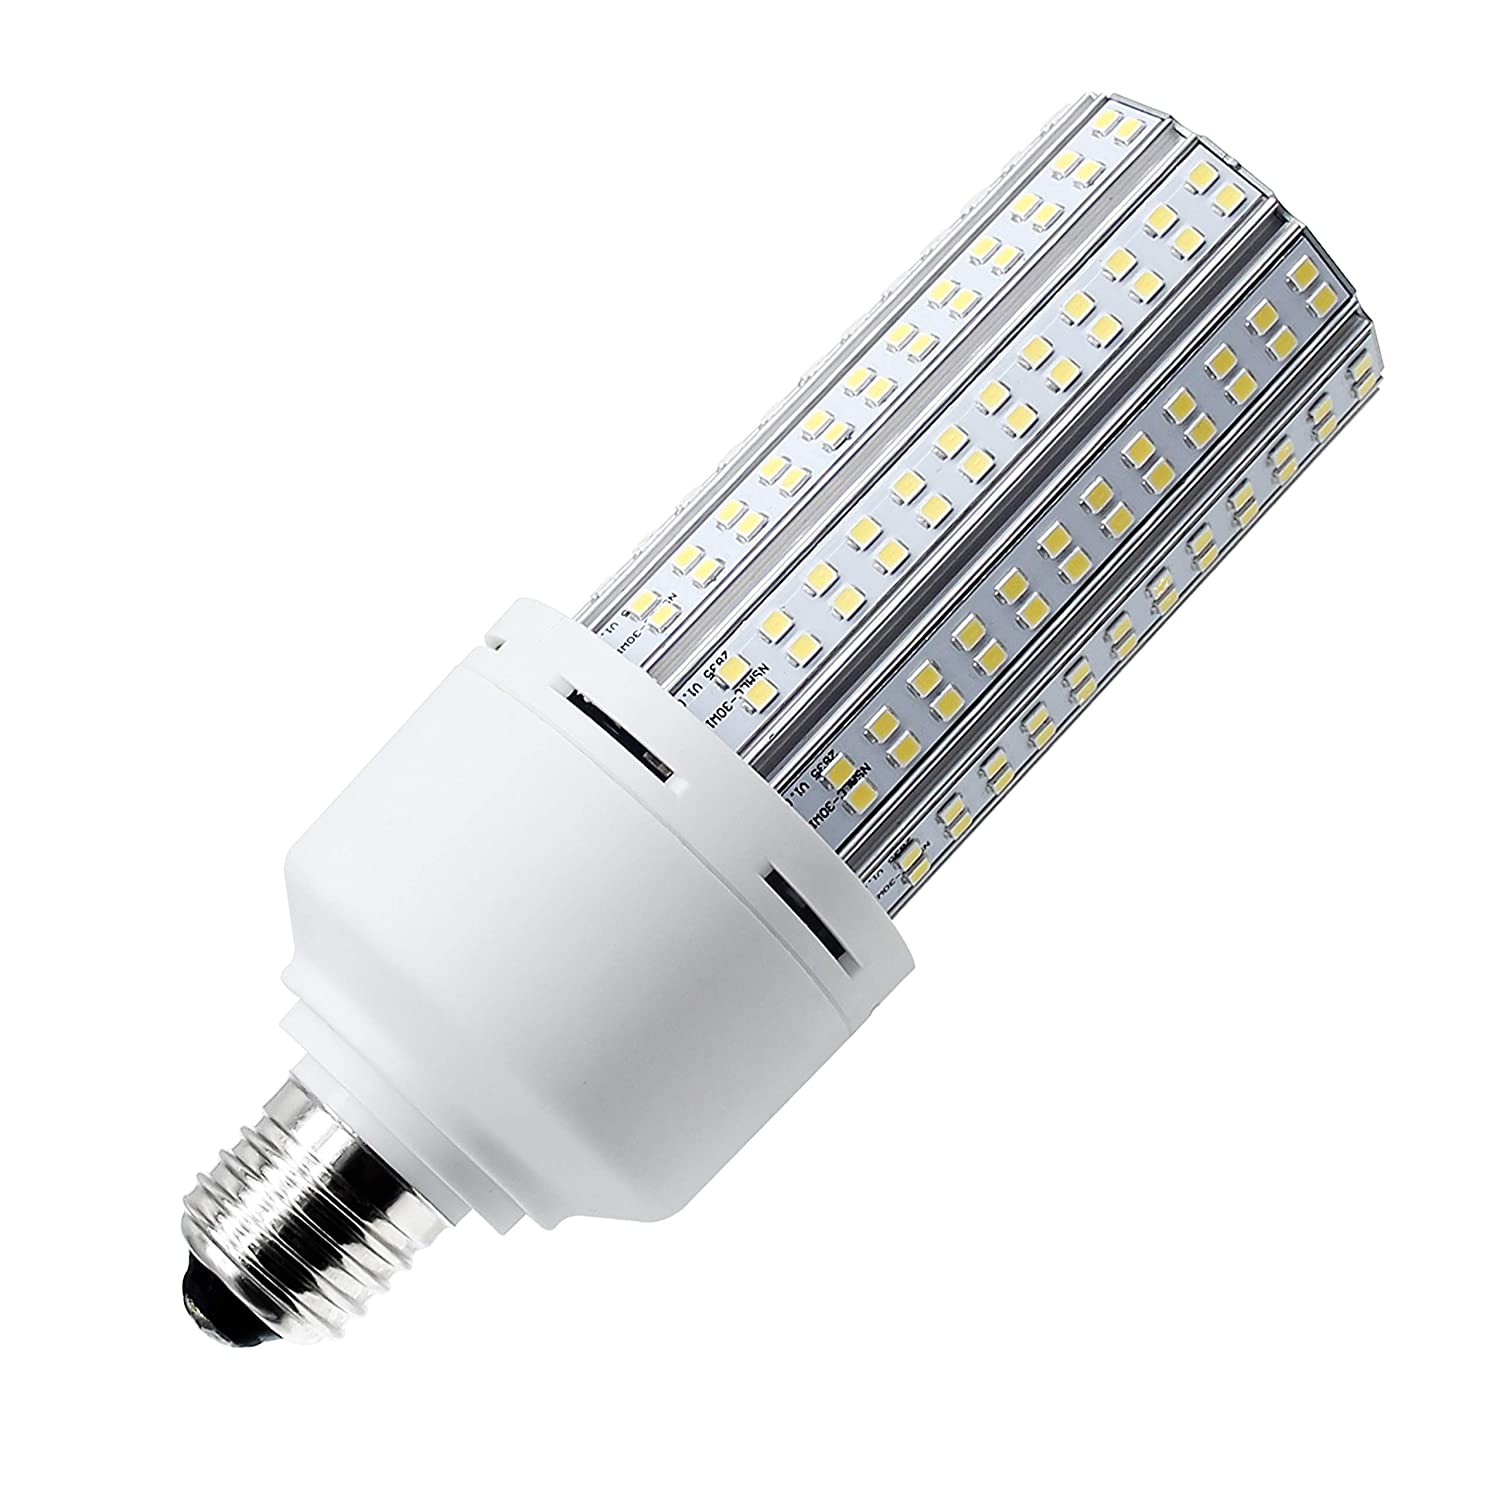 New Sunshine 20W LED Corn Light Bulb for Indoor Outdoor Standard E26 Base 2200Lm 6000K Cool White,for Street Lamp Gymnasium Garage Factory Warehouse High Bay Barn Porch Backyard Garden Super Bright